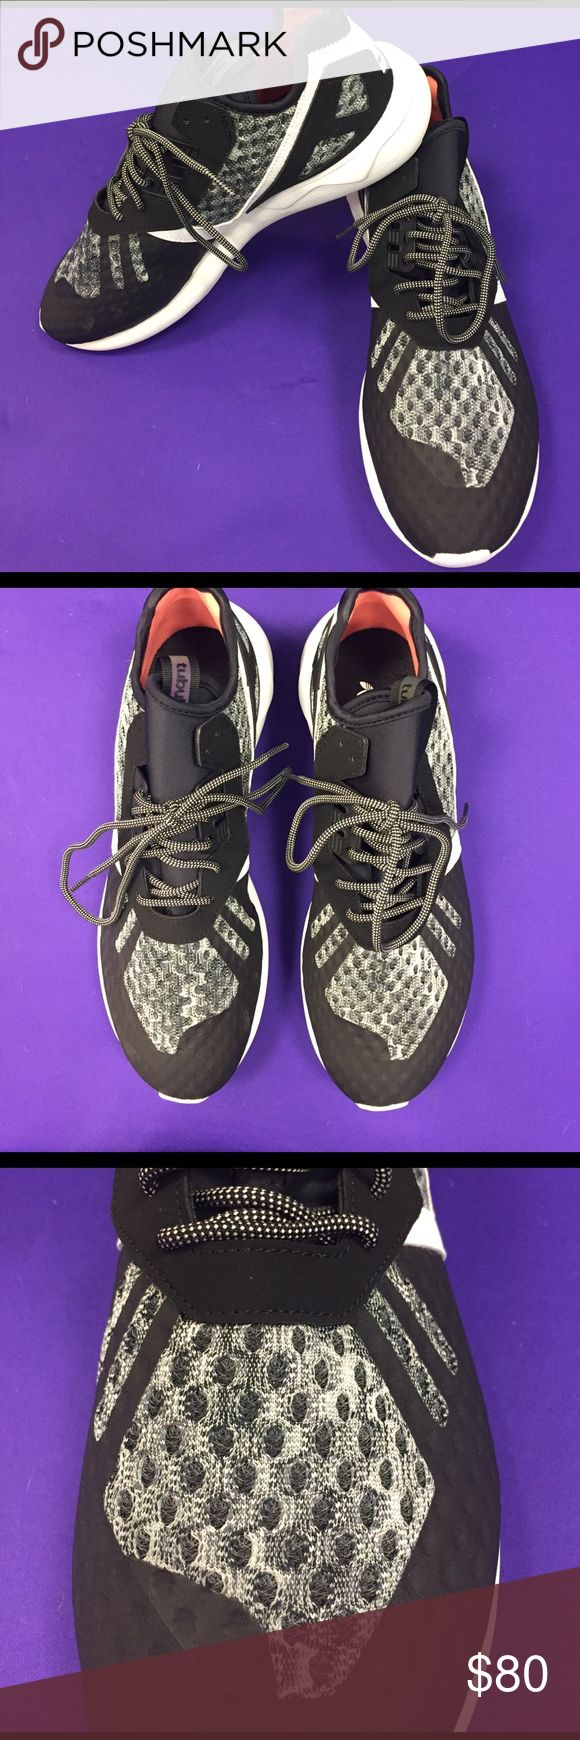 NEW Adidas Men's Black Tubular Runner Brand new with box: Men's Adidas Tubular Runner athletic sneakers (AQ2915). Black with white and heathered gray accents. Never worn. Comes with slightly damaged box (some puncture marks on top). Men's size 12. Adidas Shoes Athletic Shoes